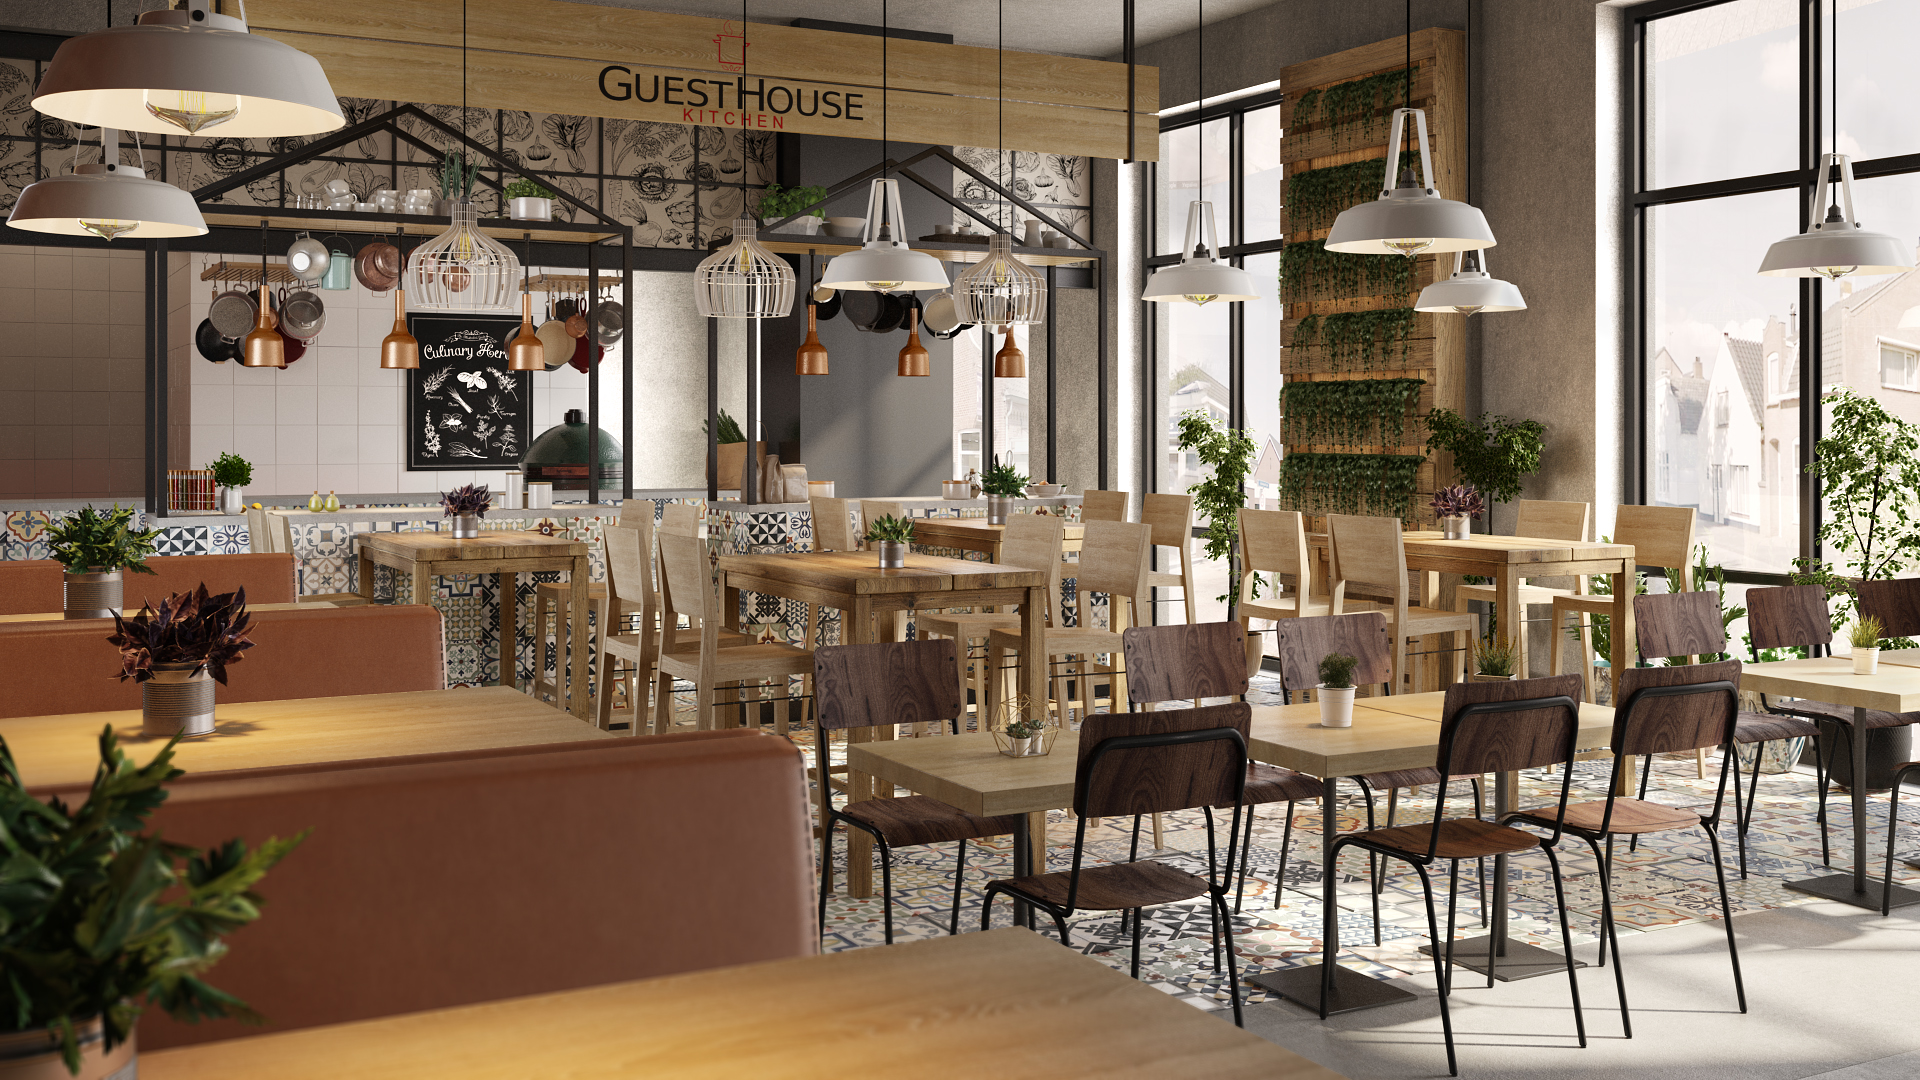 GUESTHOUSE_HOTELS_restaurant_VIEW_03_V04